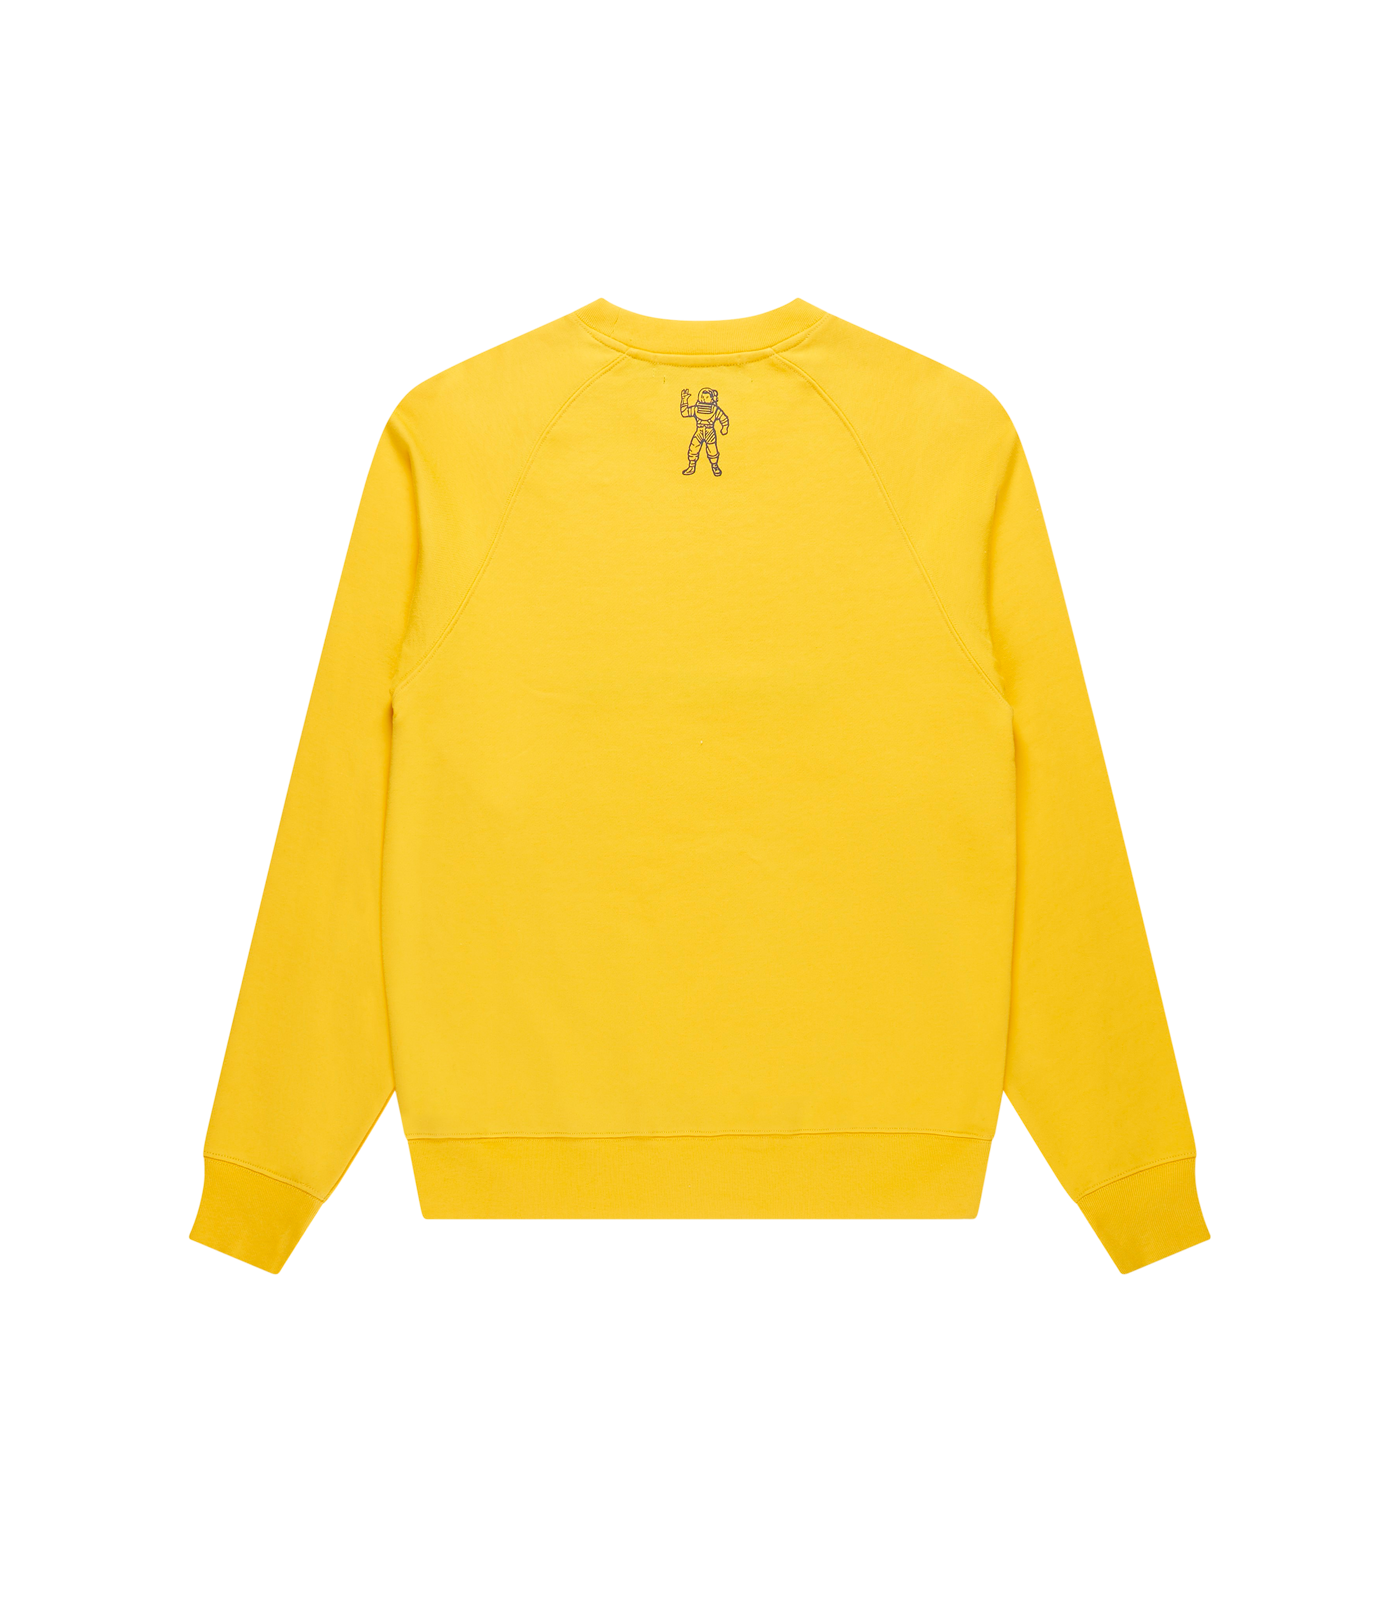 EMBROIDERED LOGO CREWNECK - YELLOW